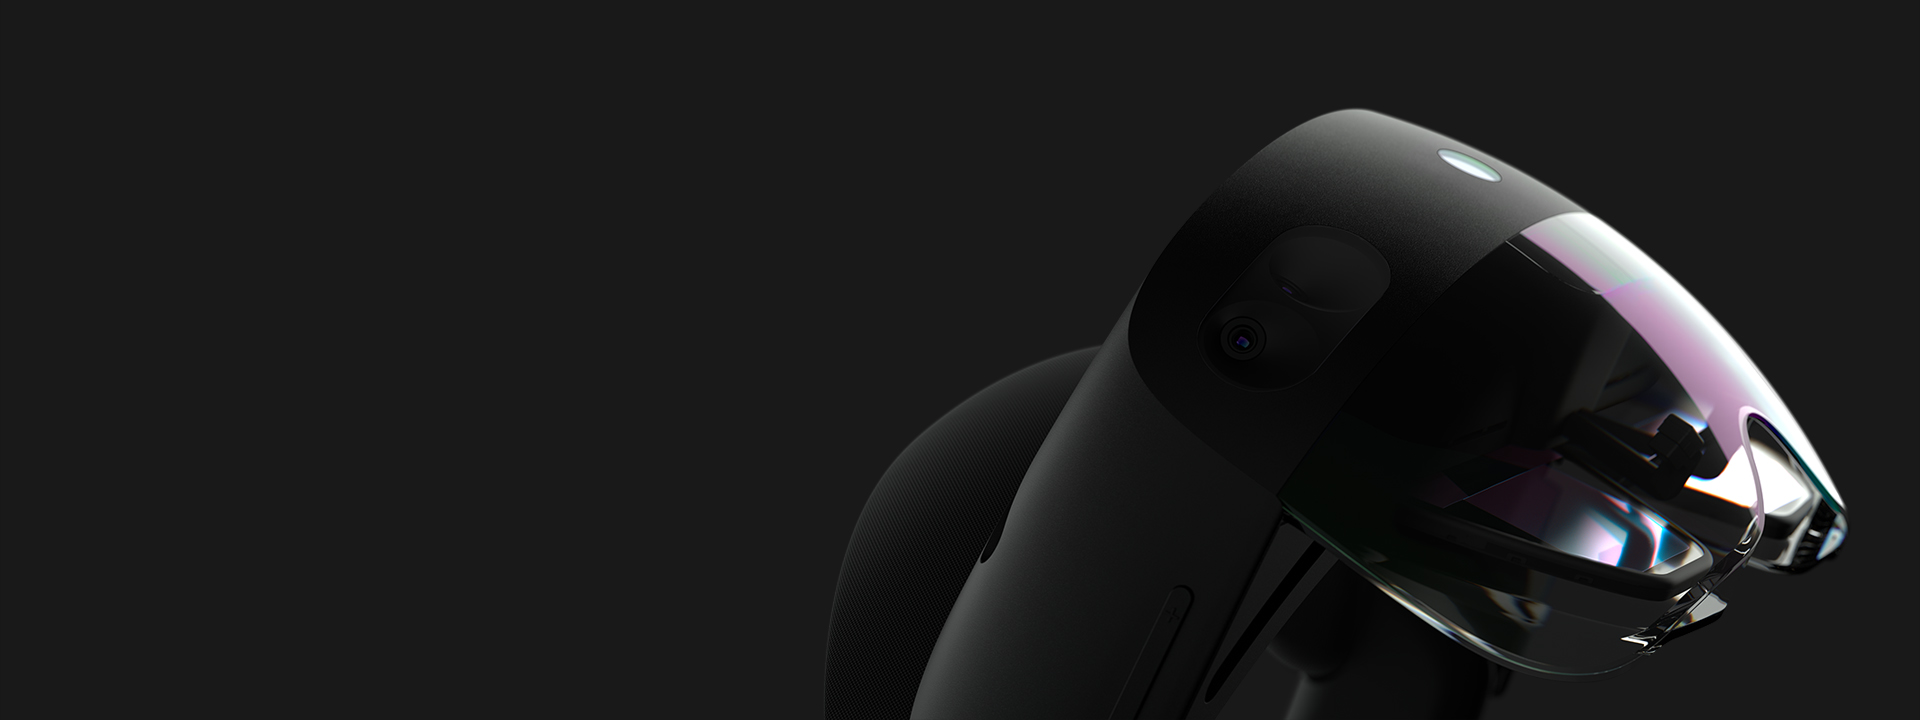 Microsoft Hololens headset with black background